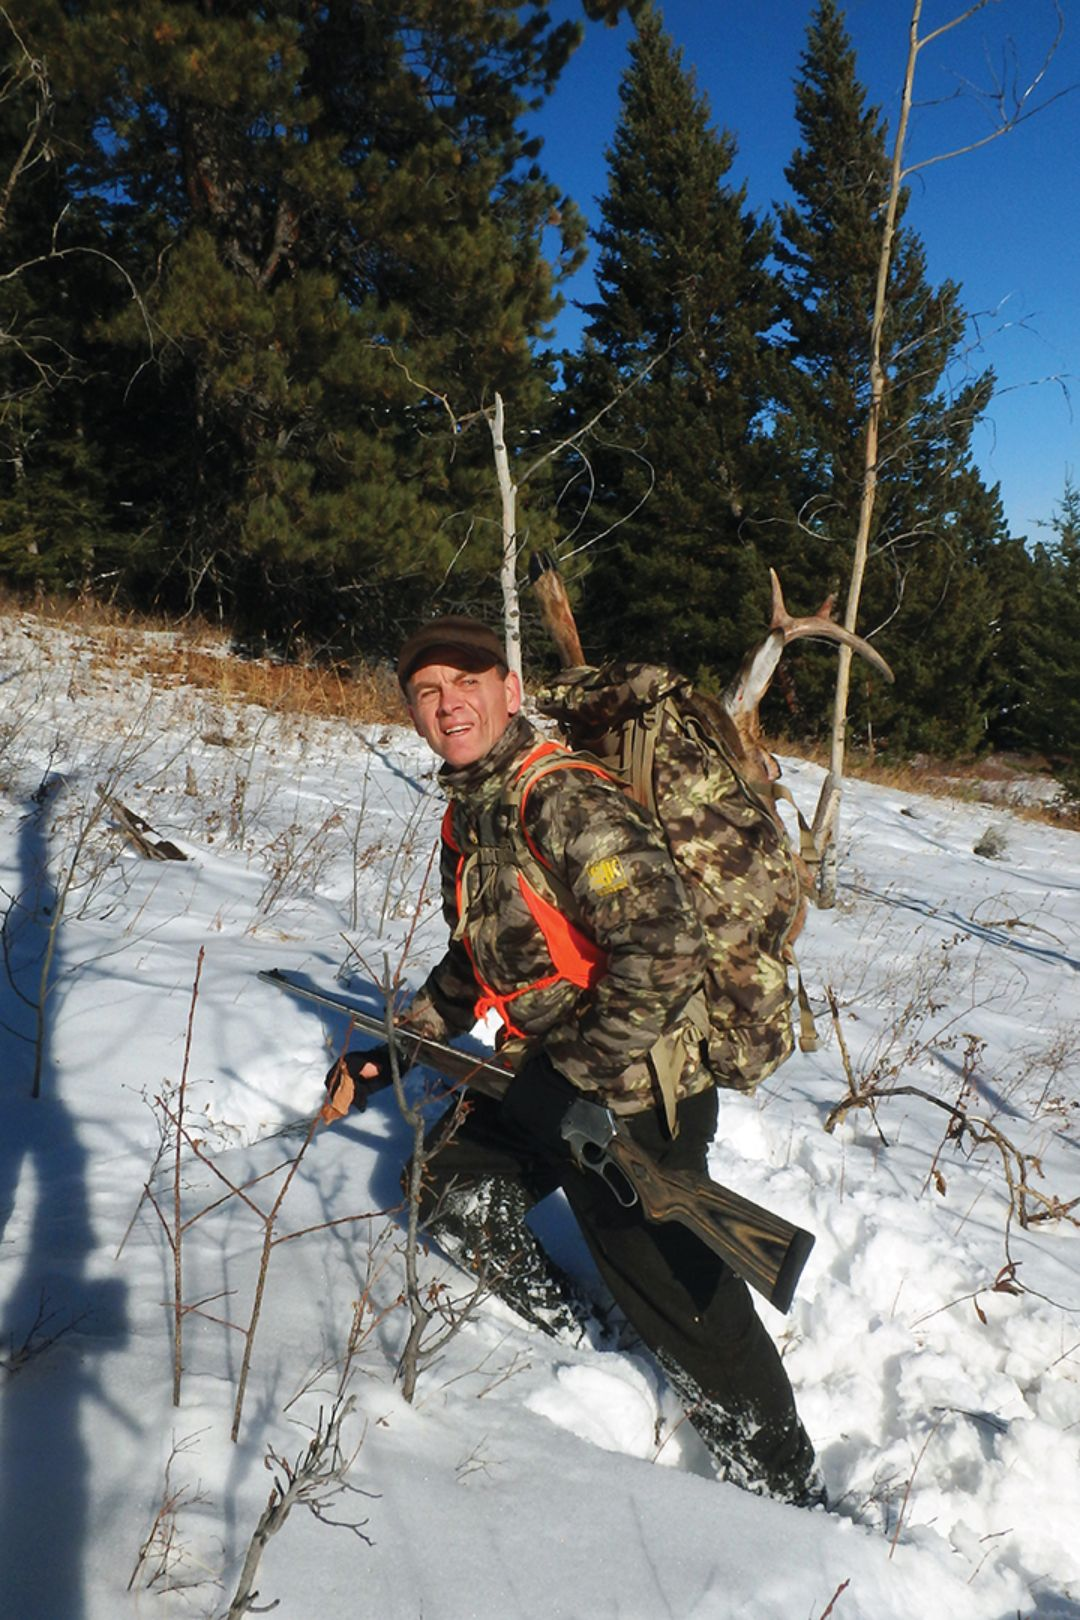 This fine buck was shot in an area that receives lots of recreational use by nonhunters.